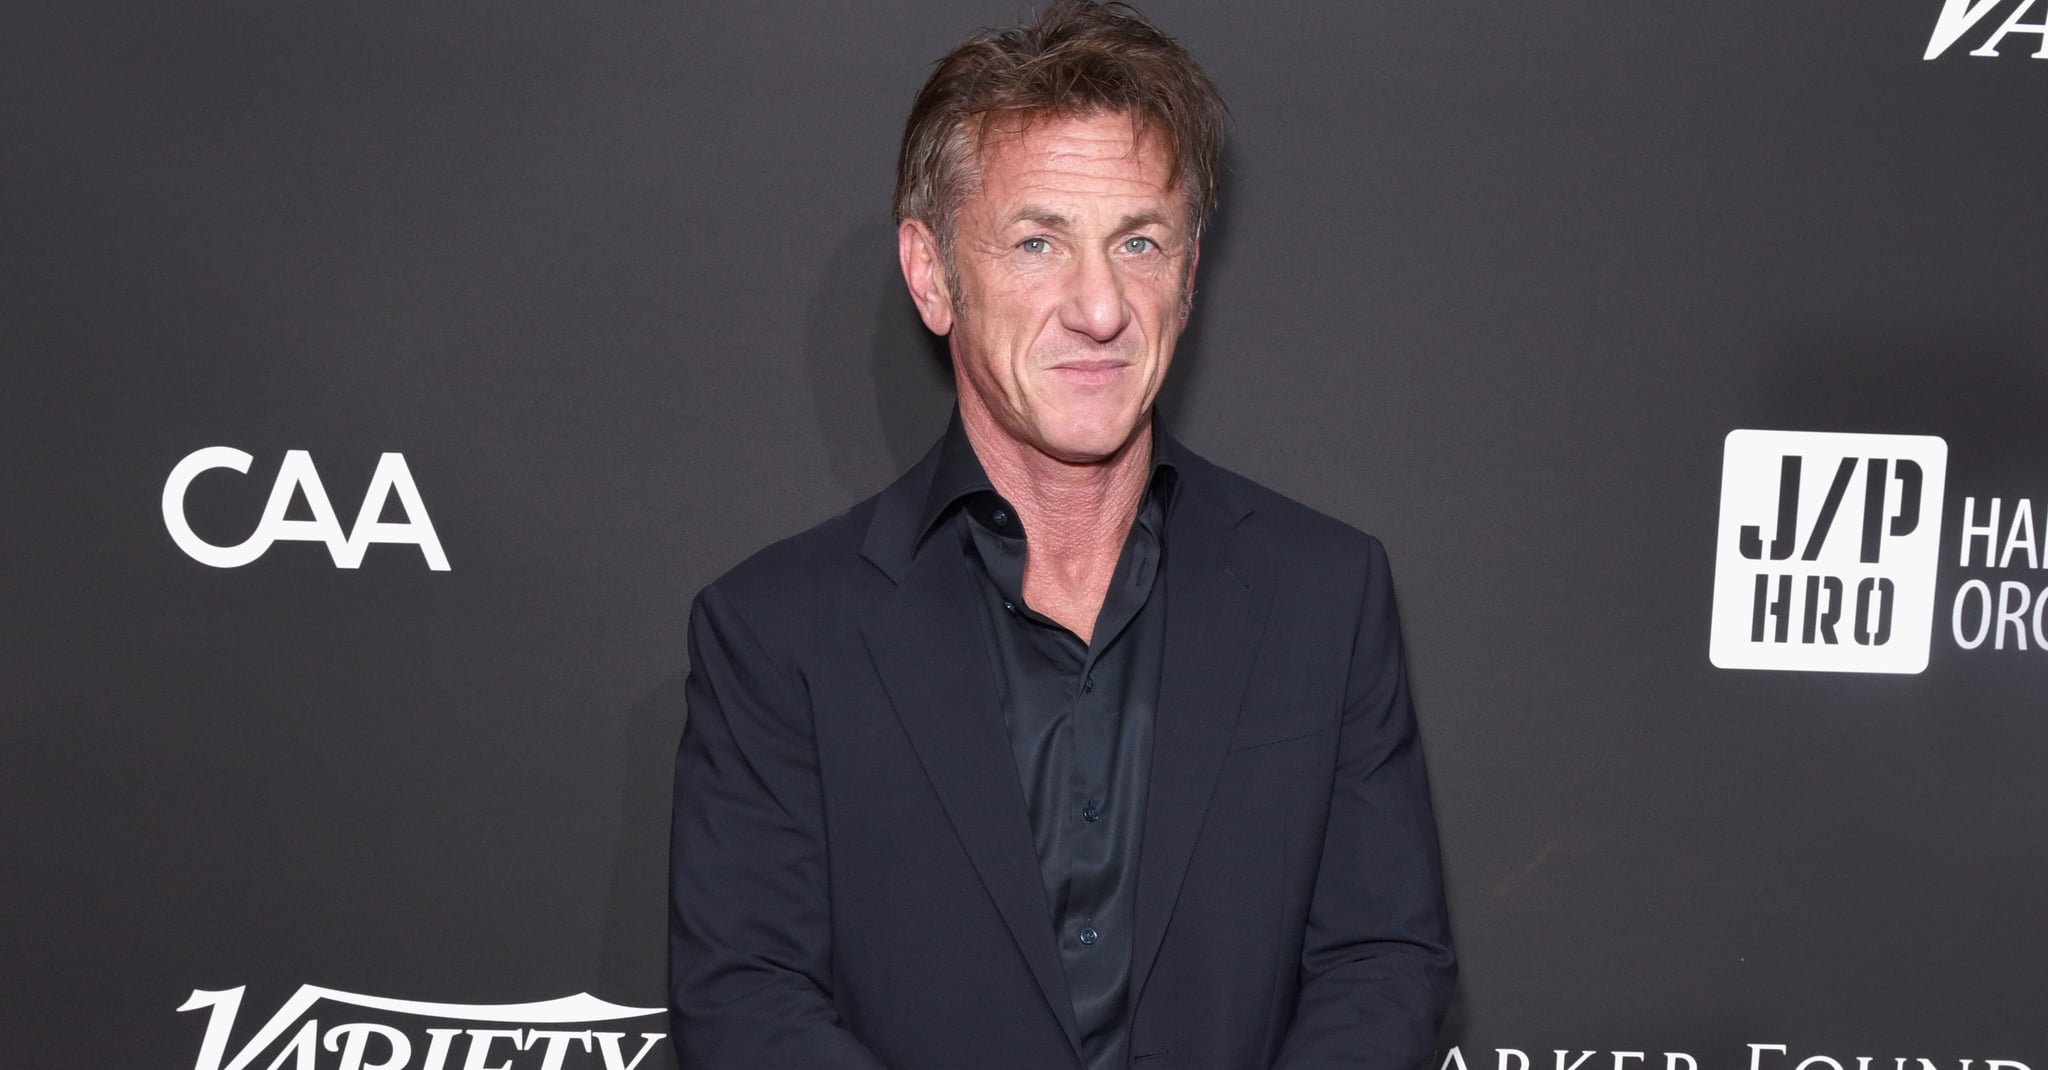 Sean Penn Says Donald Trump Is An Enemy of the State